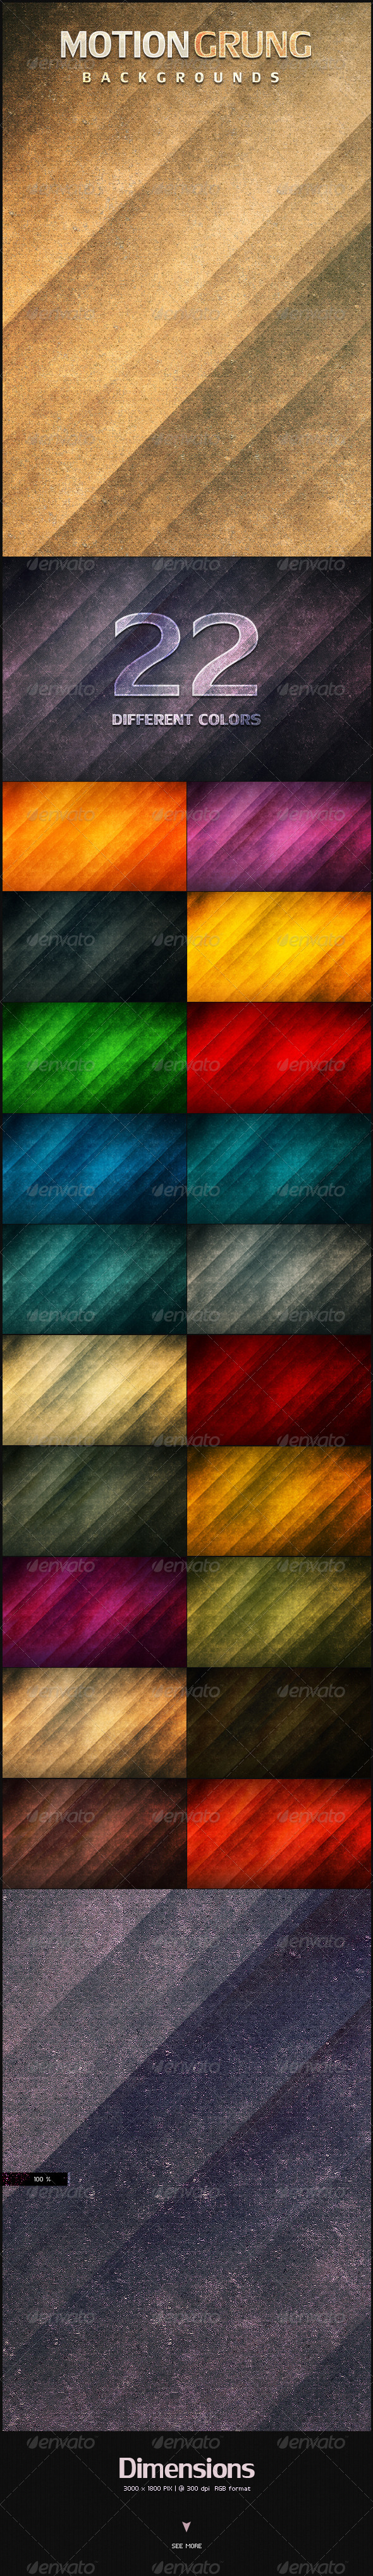 GraphicRiver Motion Grunge Backgrounds 4794371